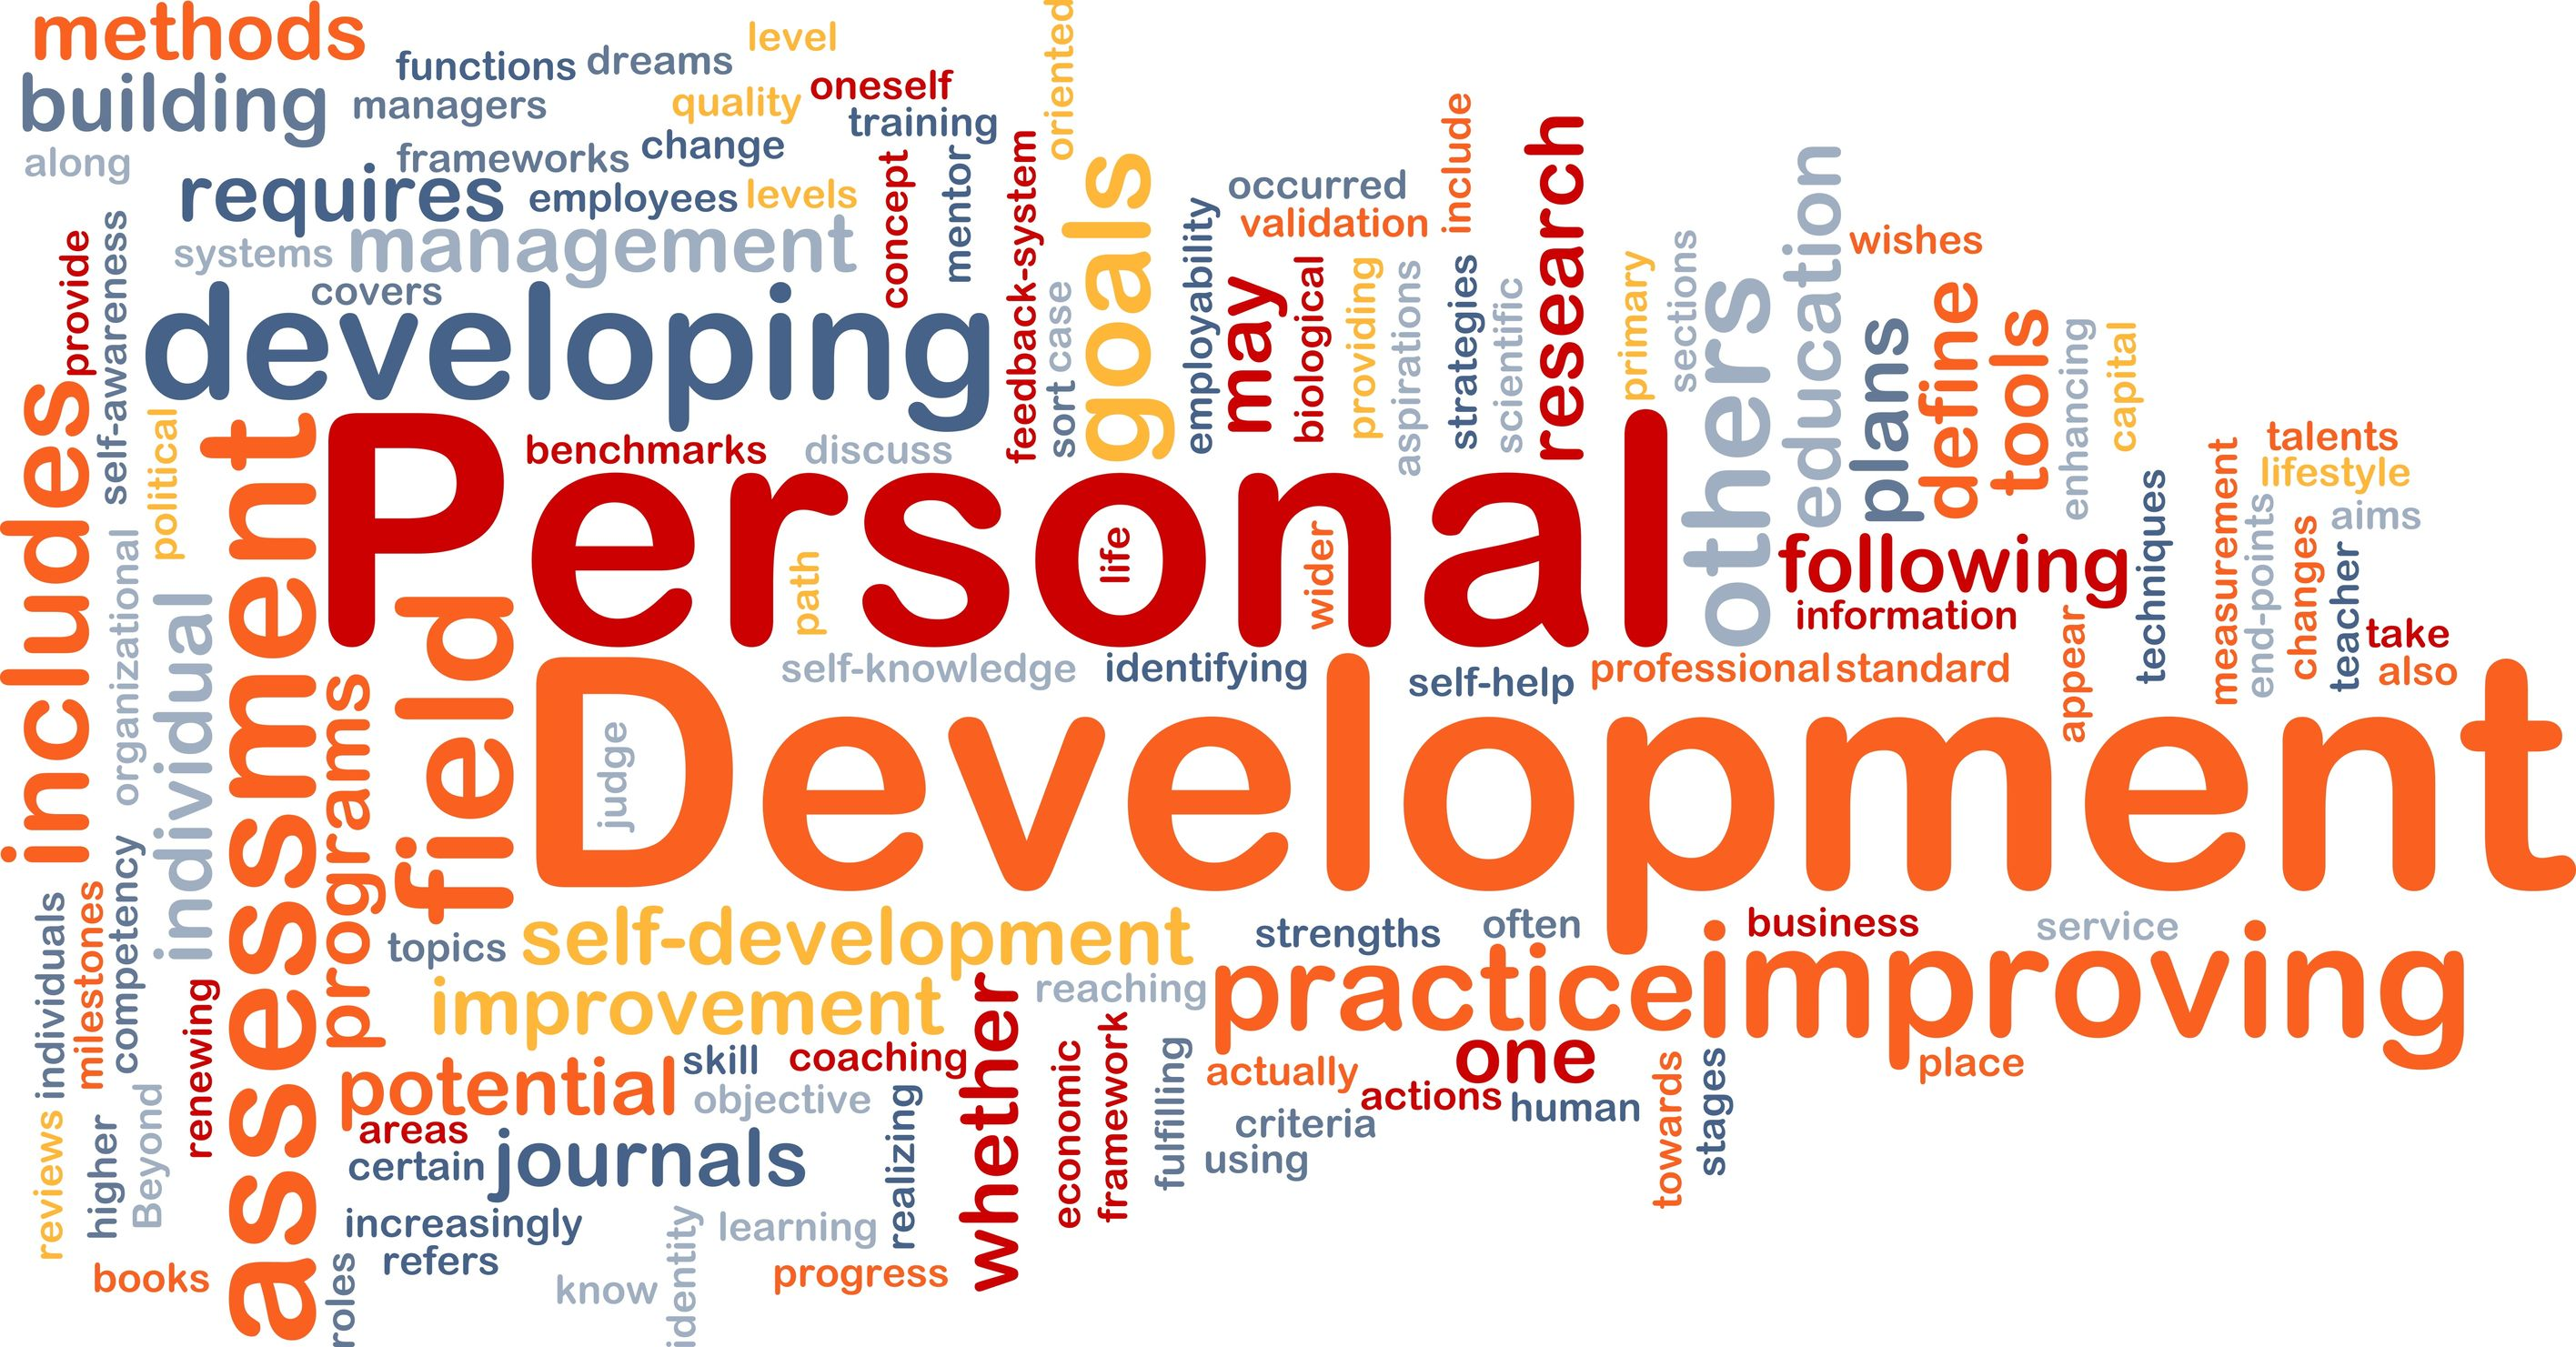 Personal development blogs 2013